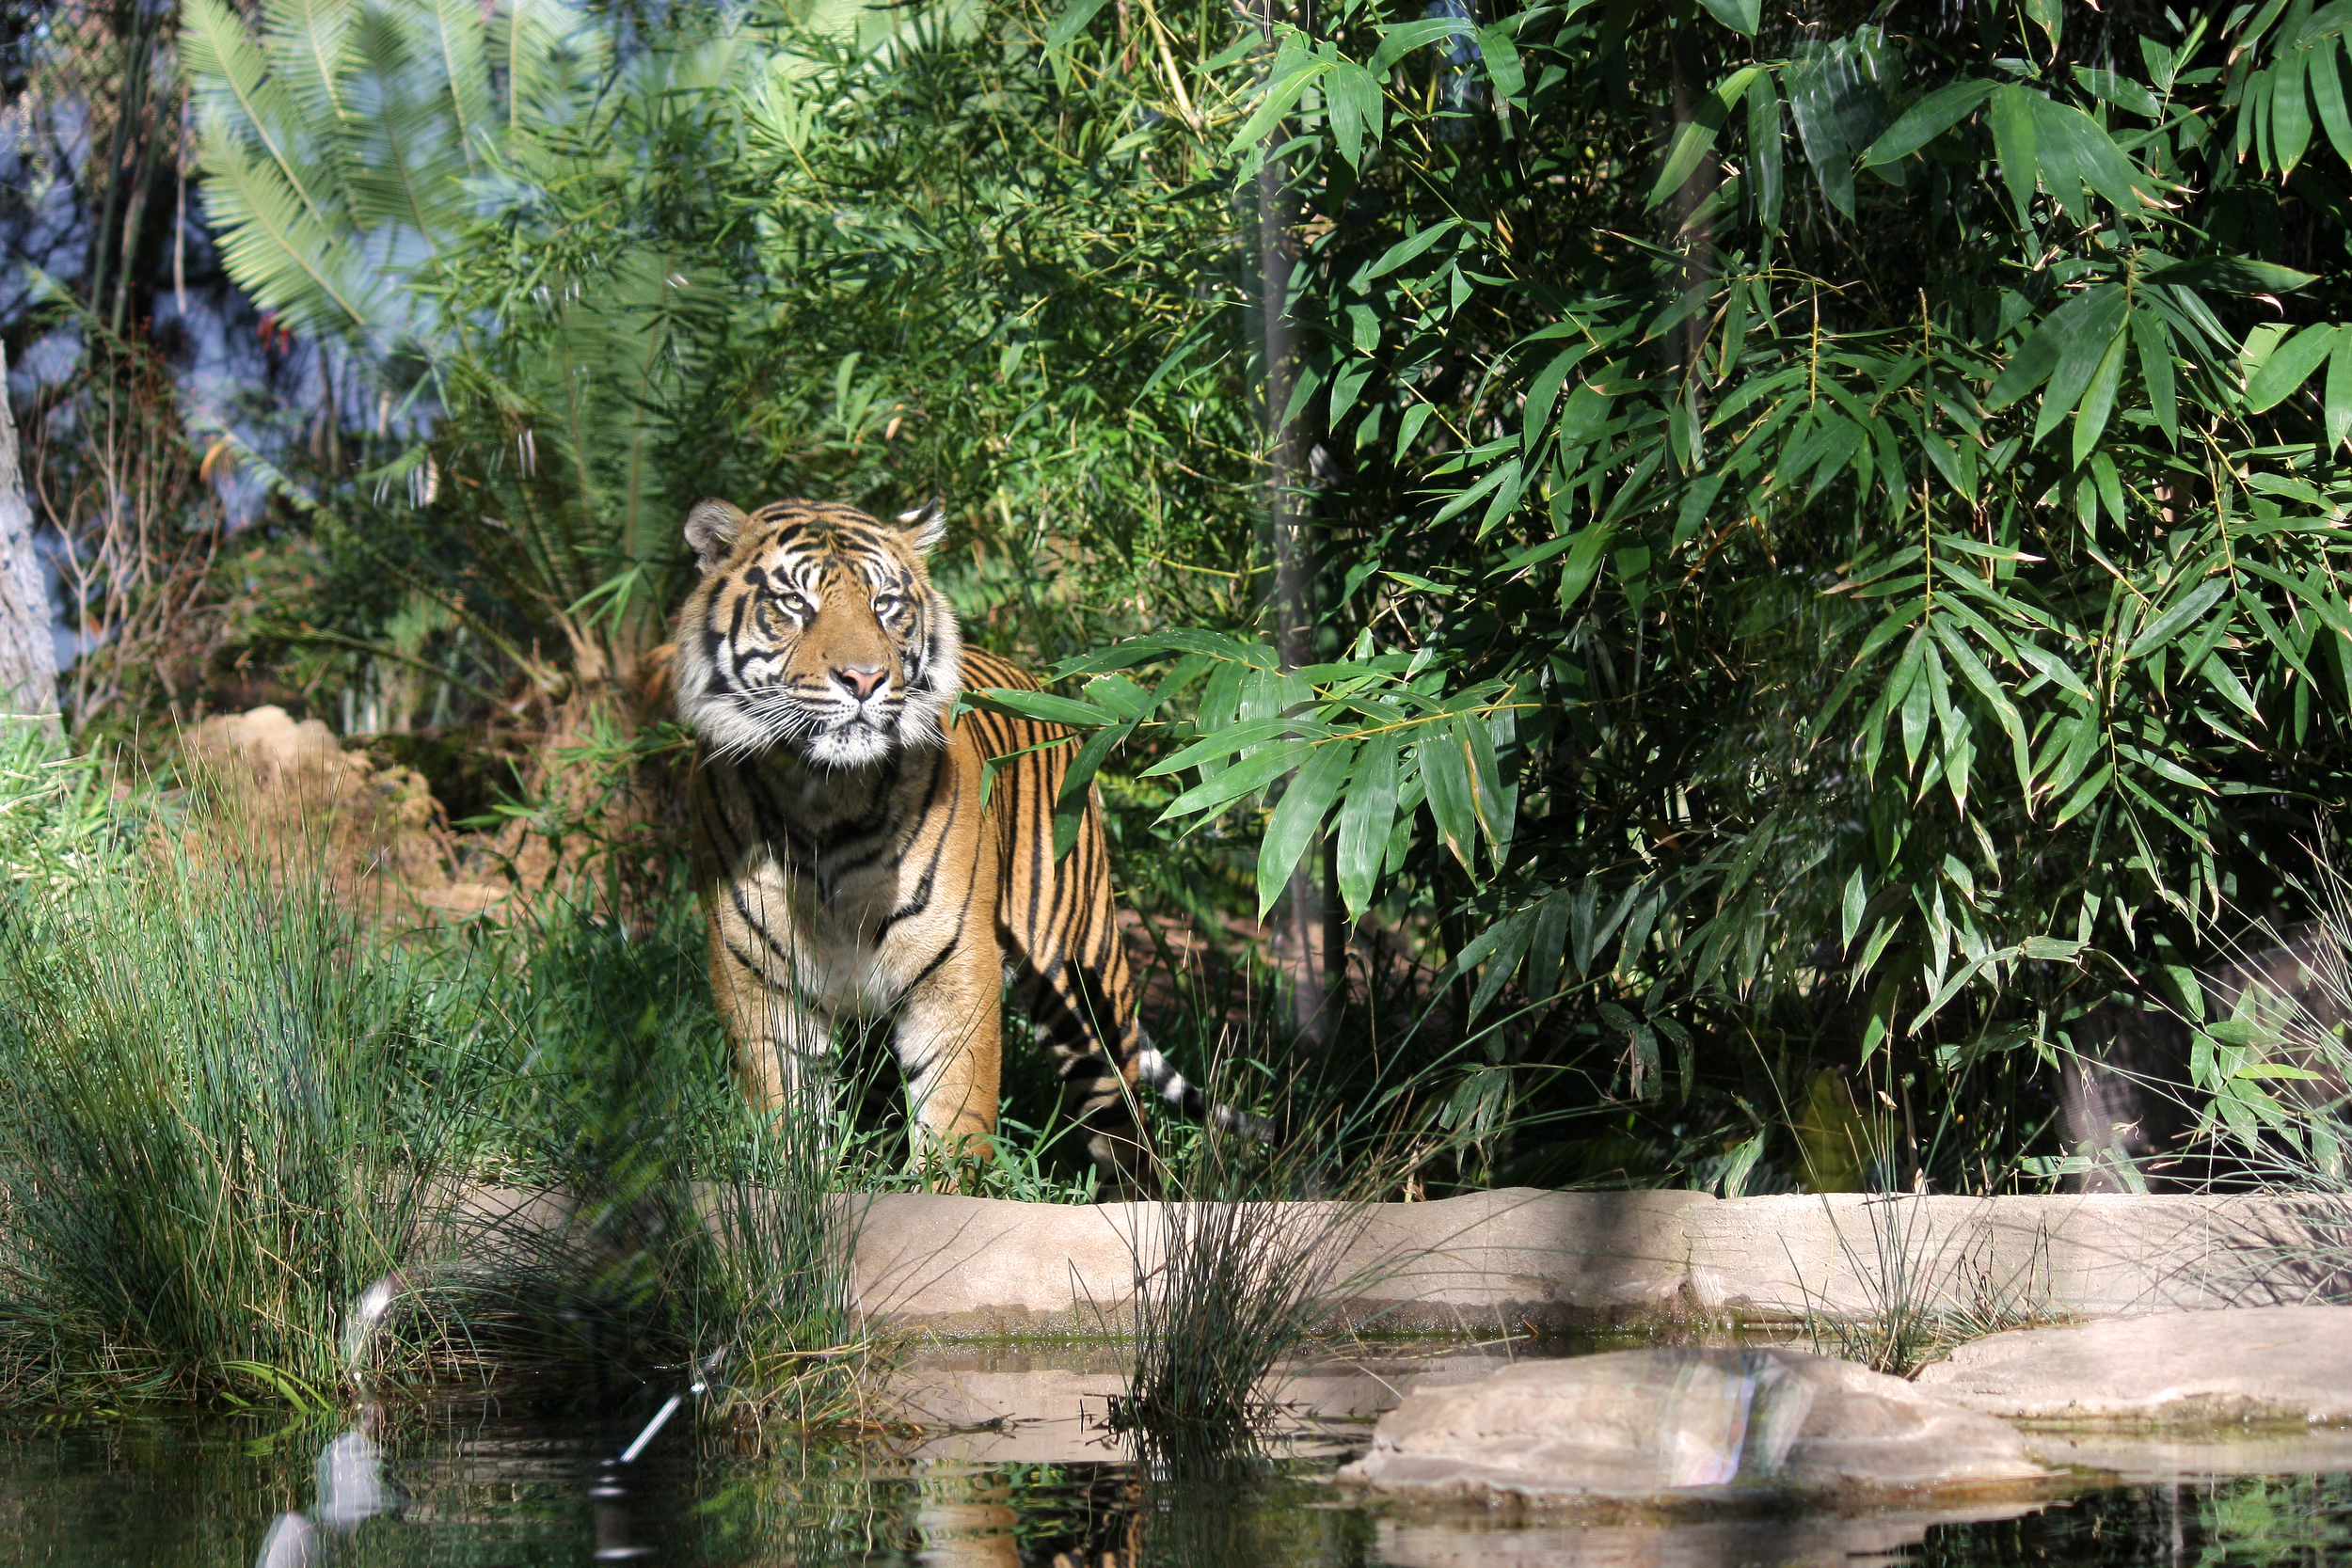 Tiger Trail   San Diego Zoo Safari Park    [All work and photography on this site is copyright 2014 Nicole Angeles.  Do not use or repost without permission.]